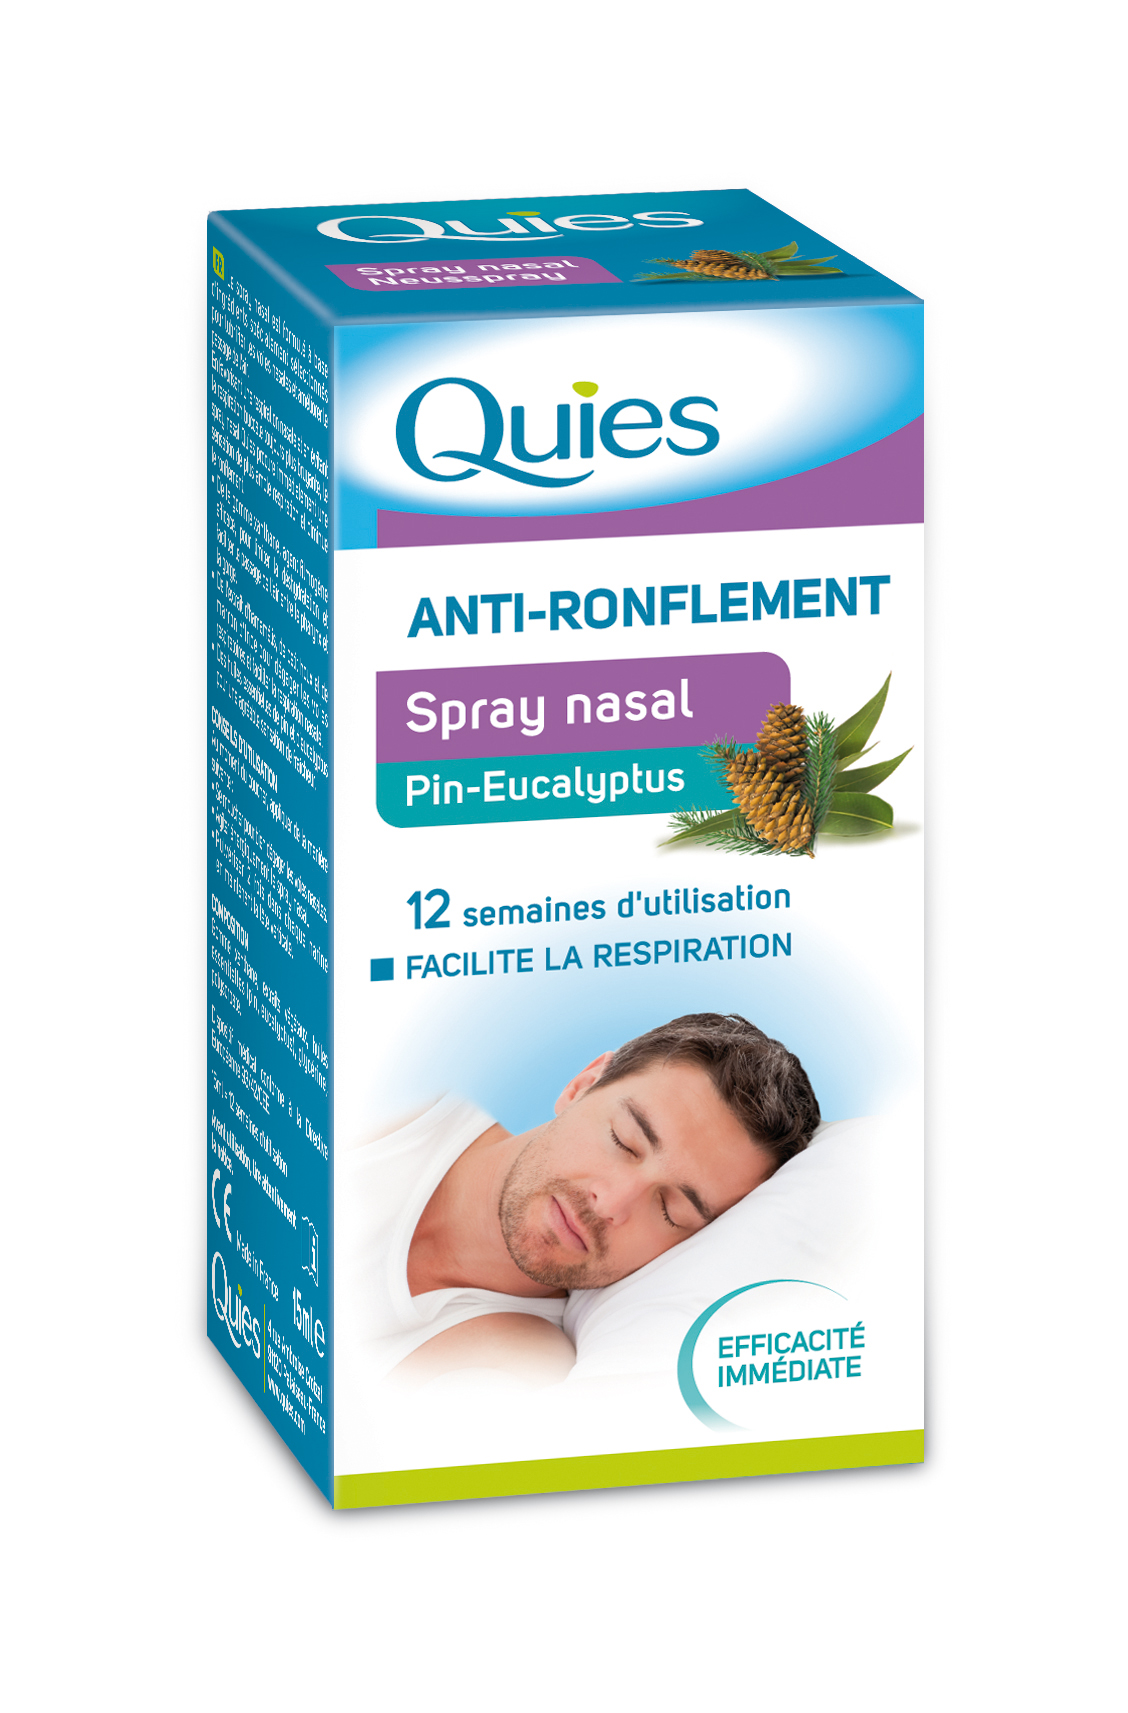 Image QUIES sol nasal anti-ronflement